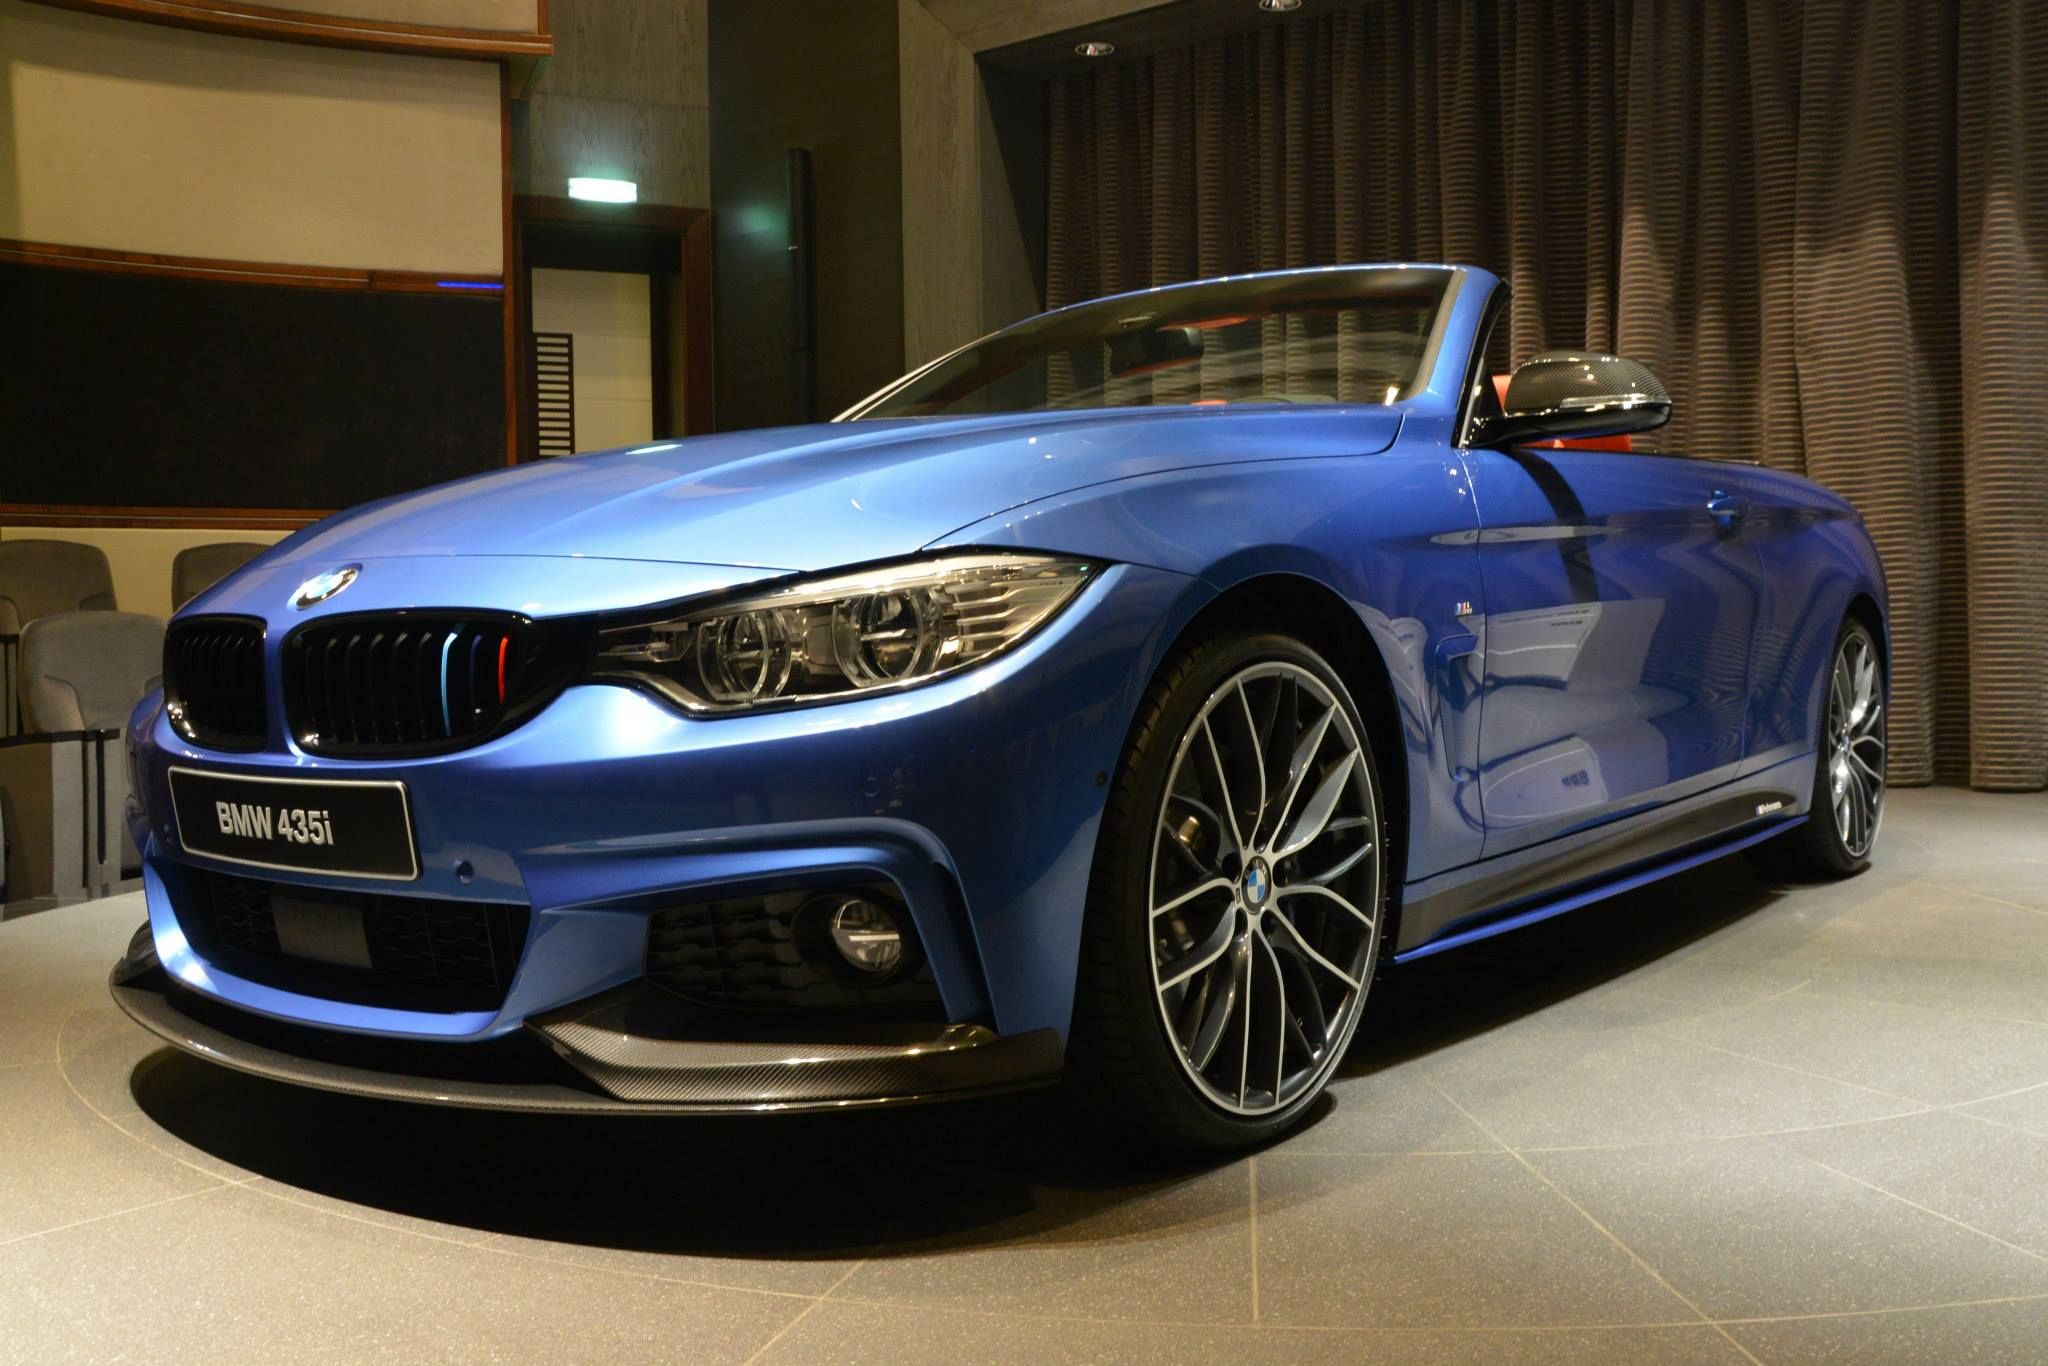 Bmw 435i Convertible In Estoril Blue And With M Performance Parts Bmw 4 Series Bmw Bmw 4